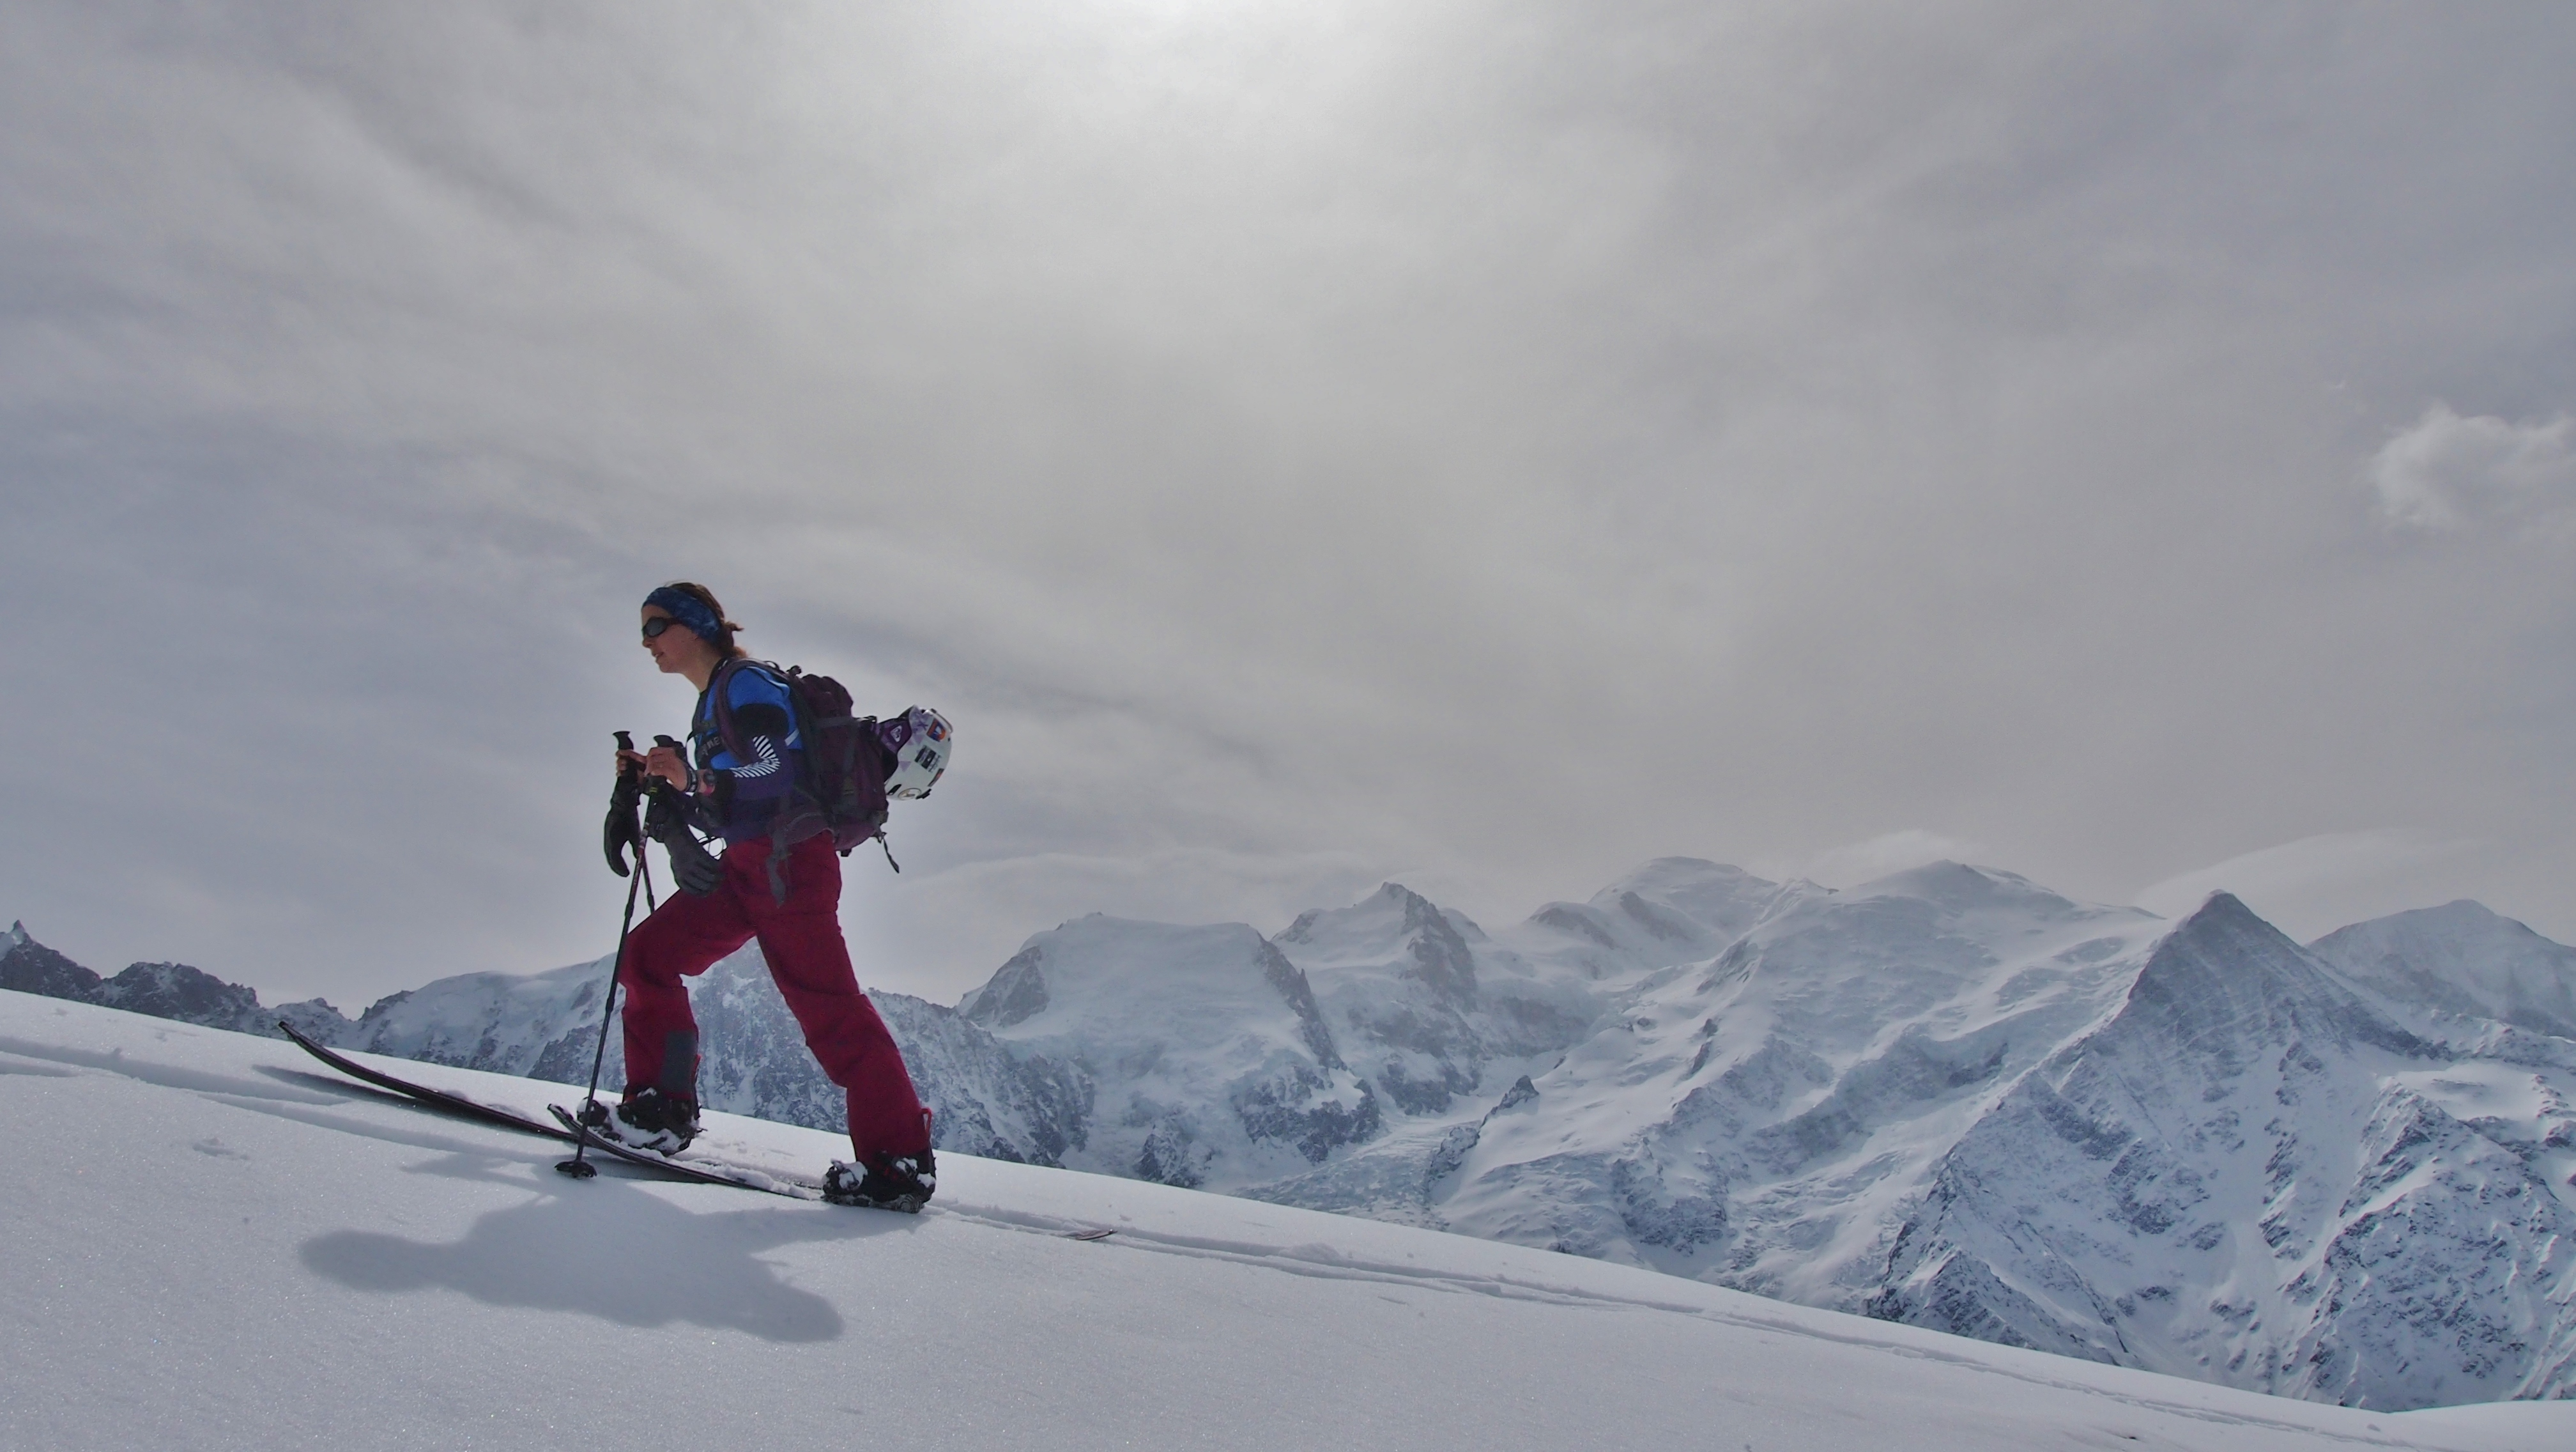 Splitboarding: Five Pros and Cons